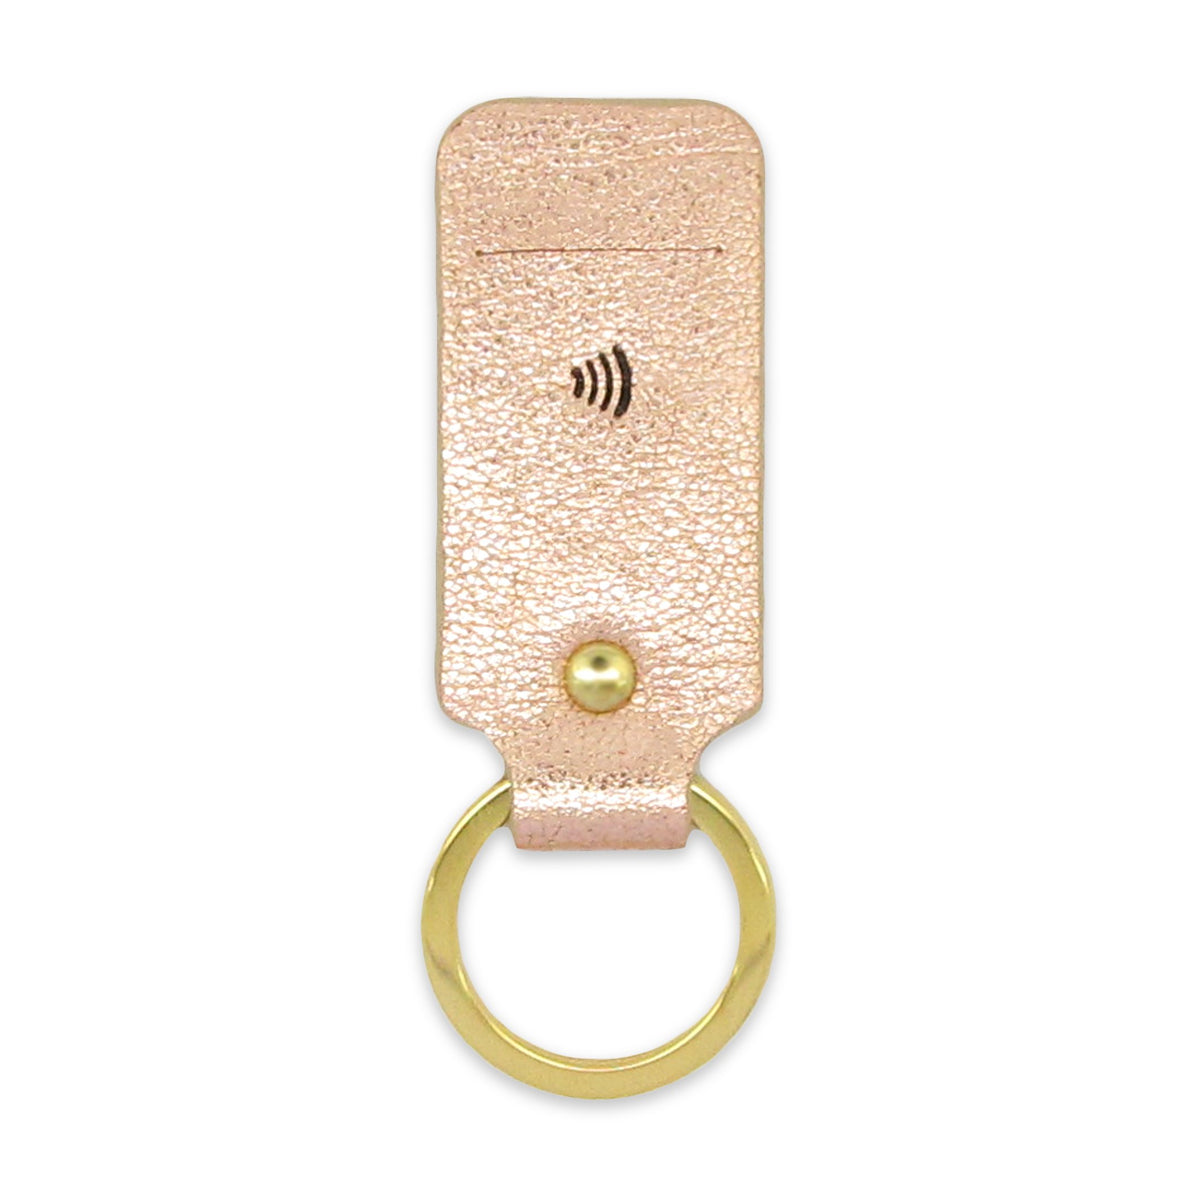 Leather Contactless Payment Key Fob - Rose Gold Tovi Sorga With Contactless Payment Chip Rose Gold